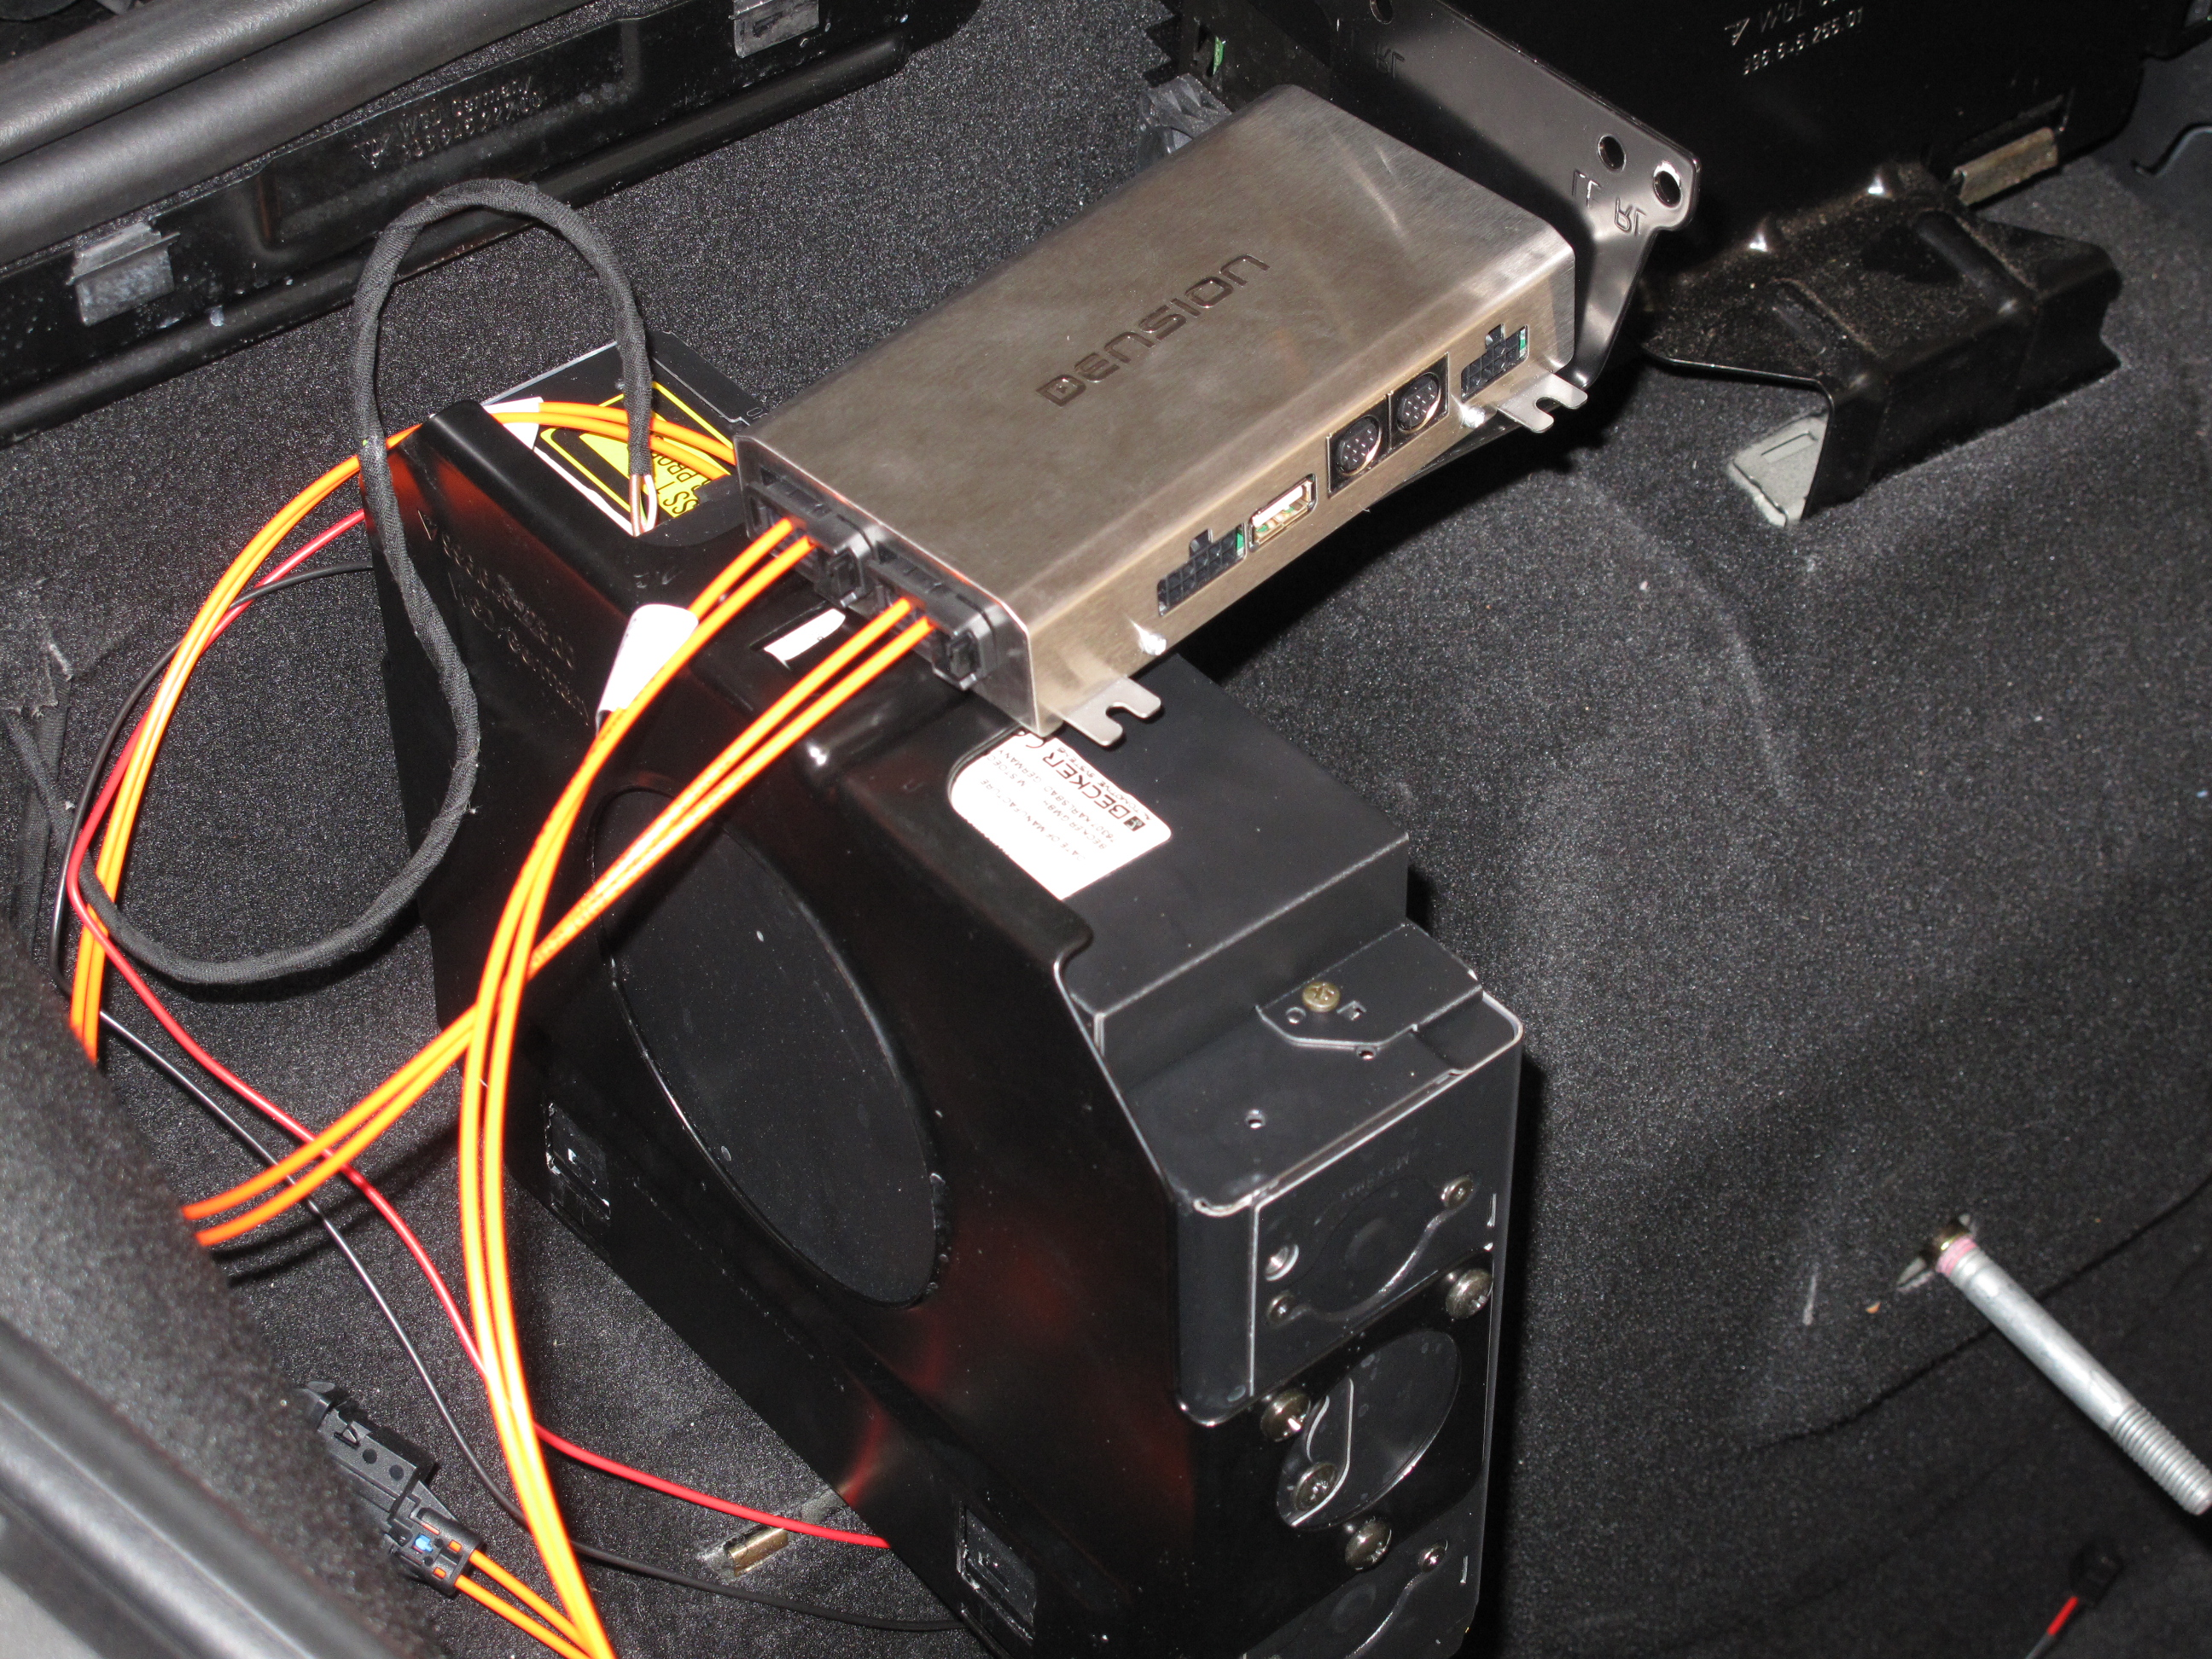 Porsche Cdr 23 Wiring Just Another Diagram Blog Diy Dension Gateway Most Ipod With And Cdc 4 On 996 Rh Renntech